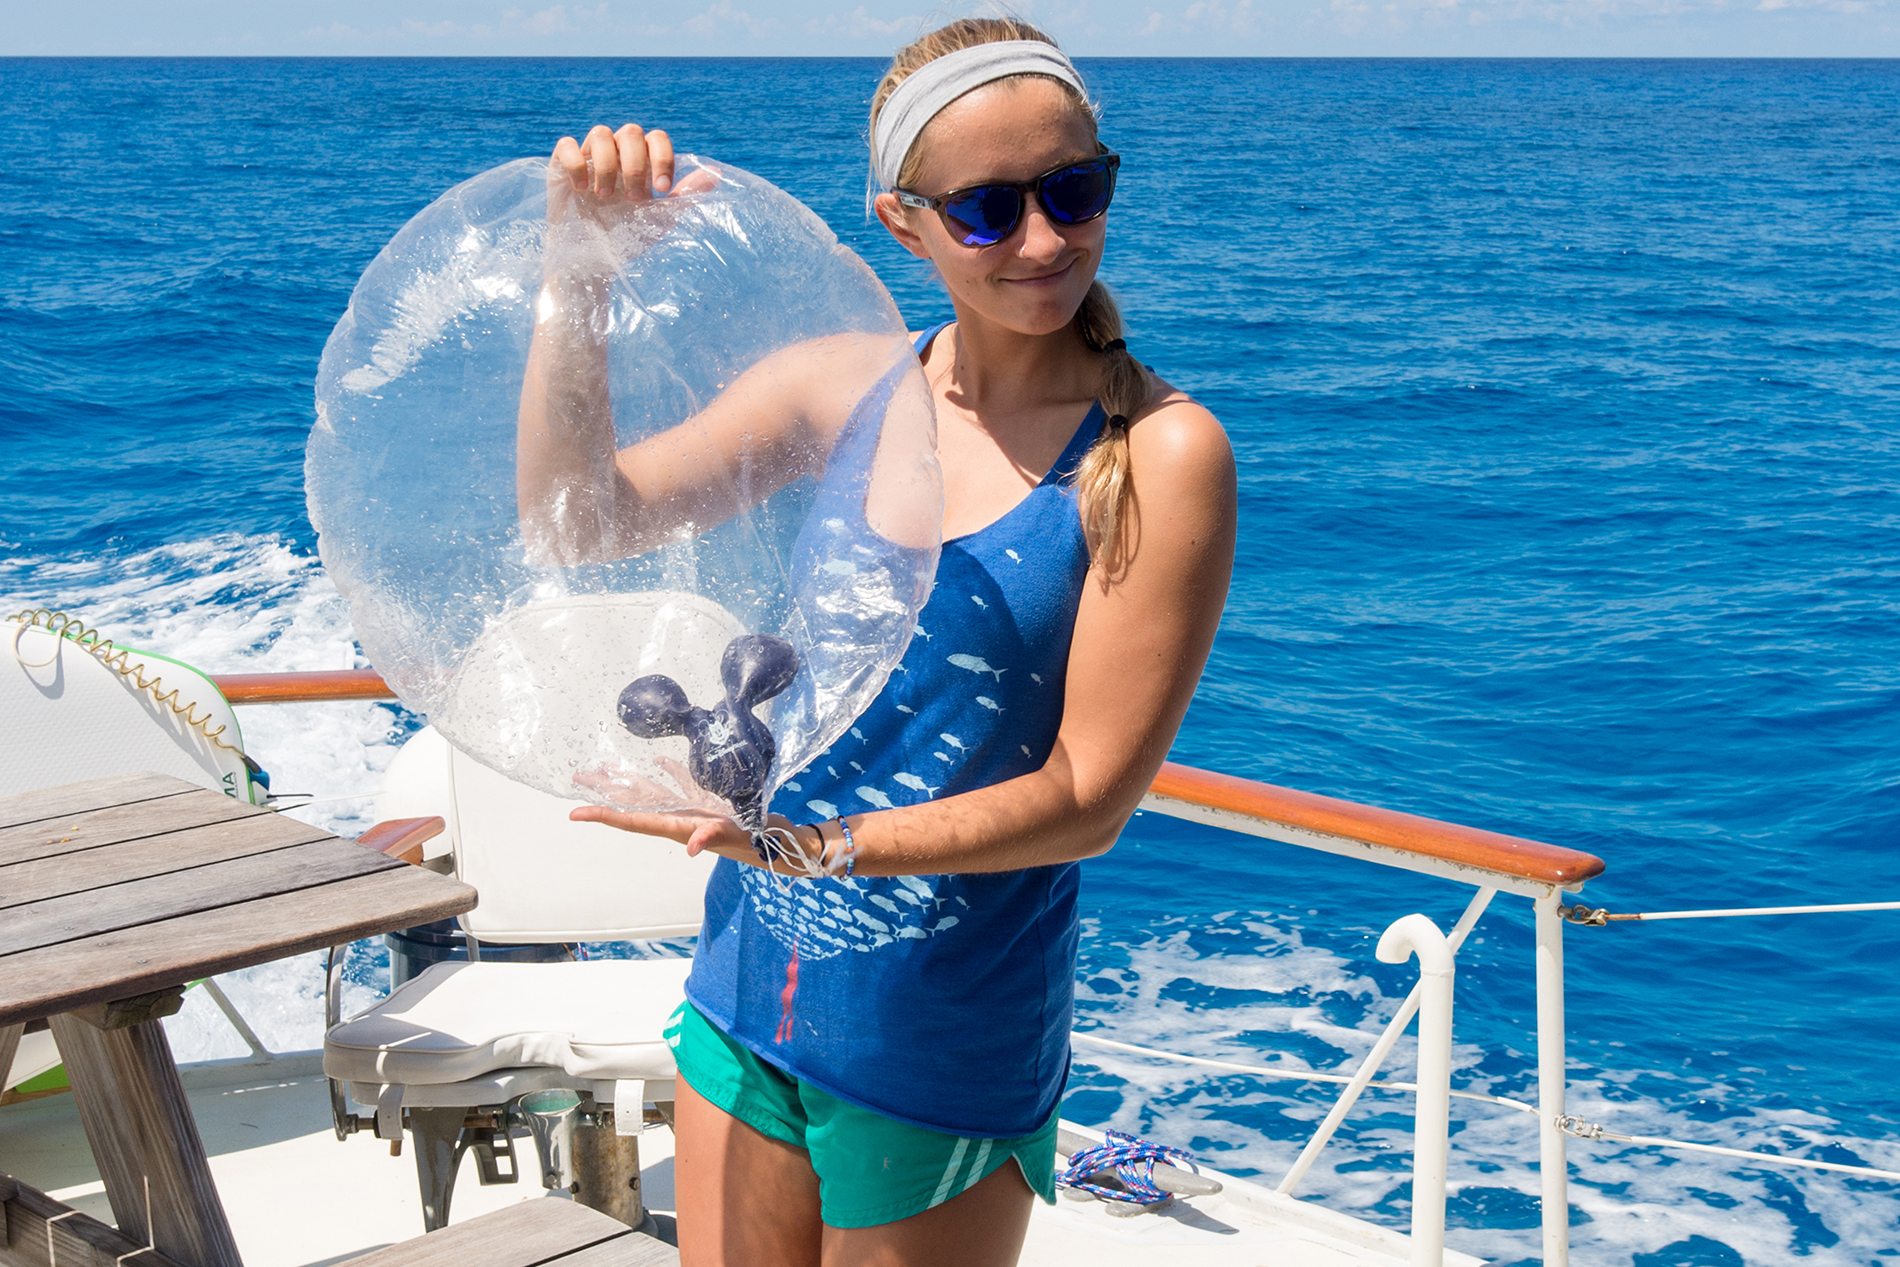 a young girl stands on a boat and holds a washed up balloon from Walt Disney World